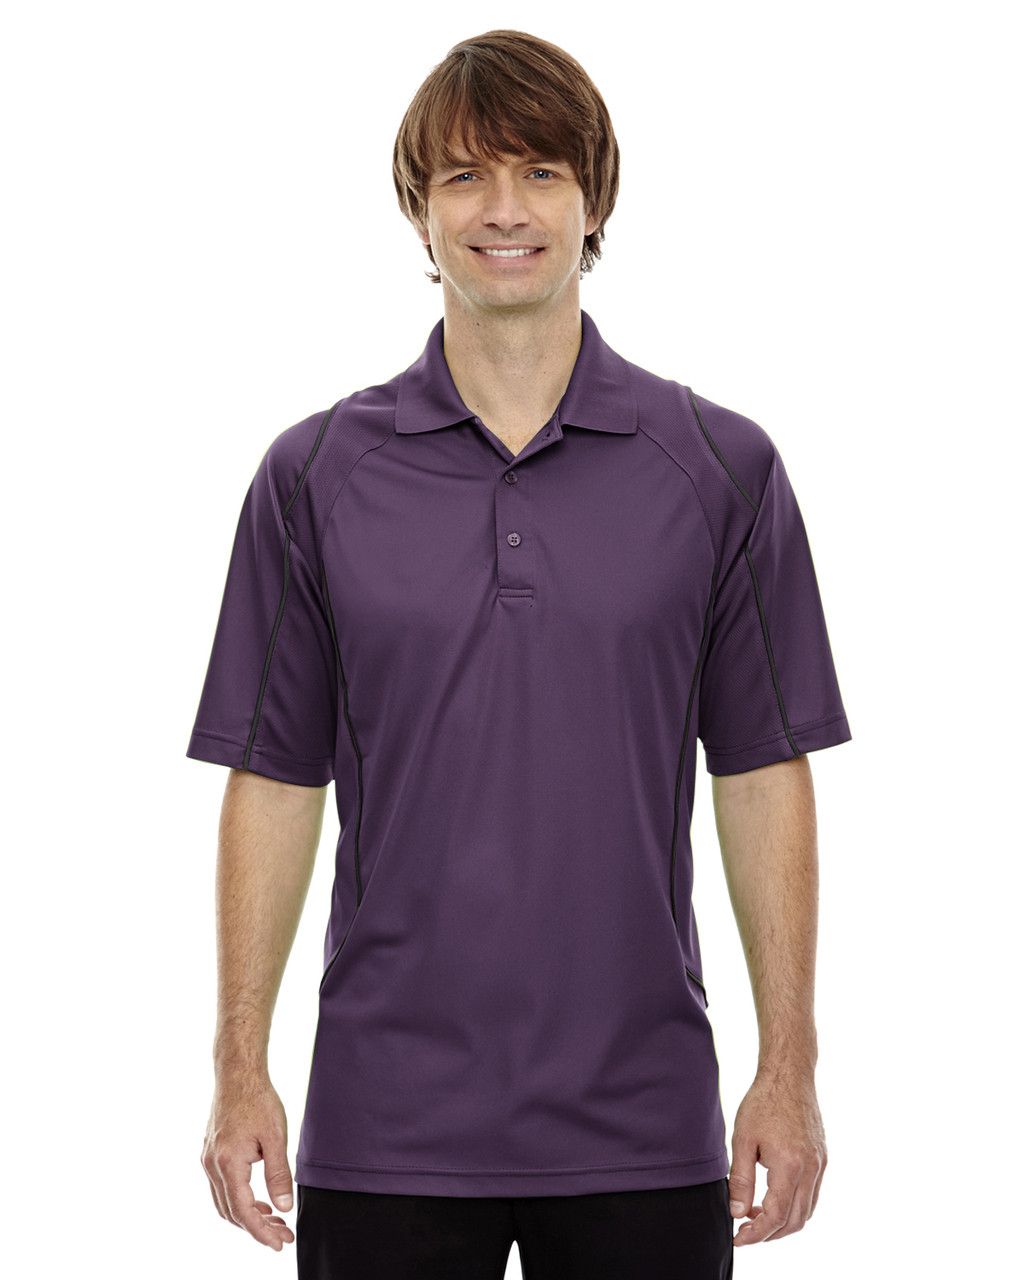 Mulbry Purpl - 85107 Ash City - Extreme Eperformance Men's Velocity Polo Shirt with Piping